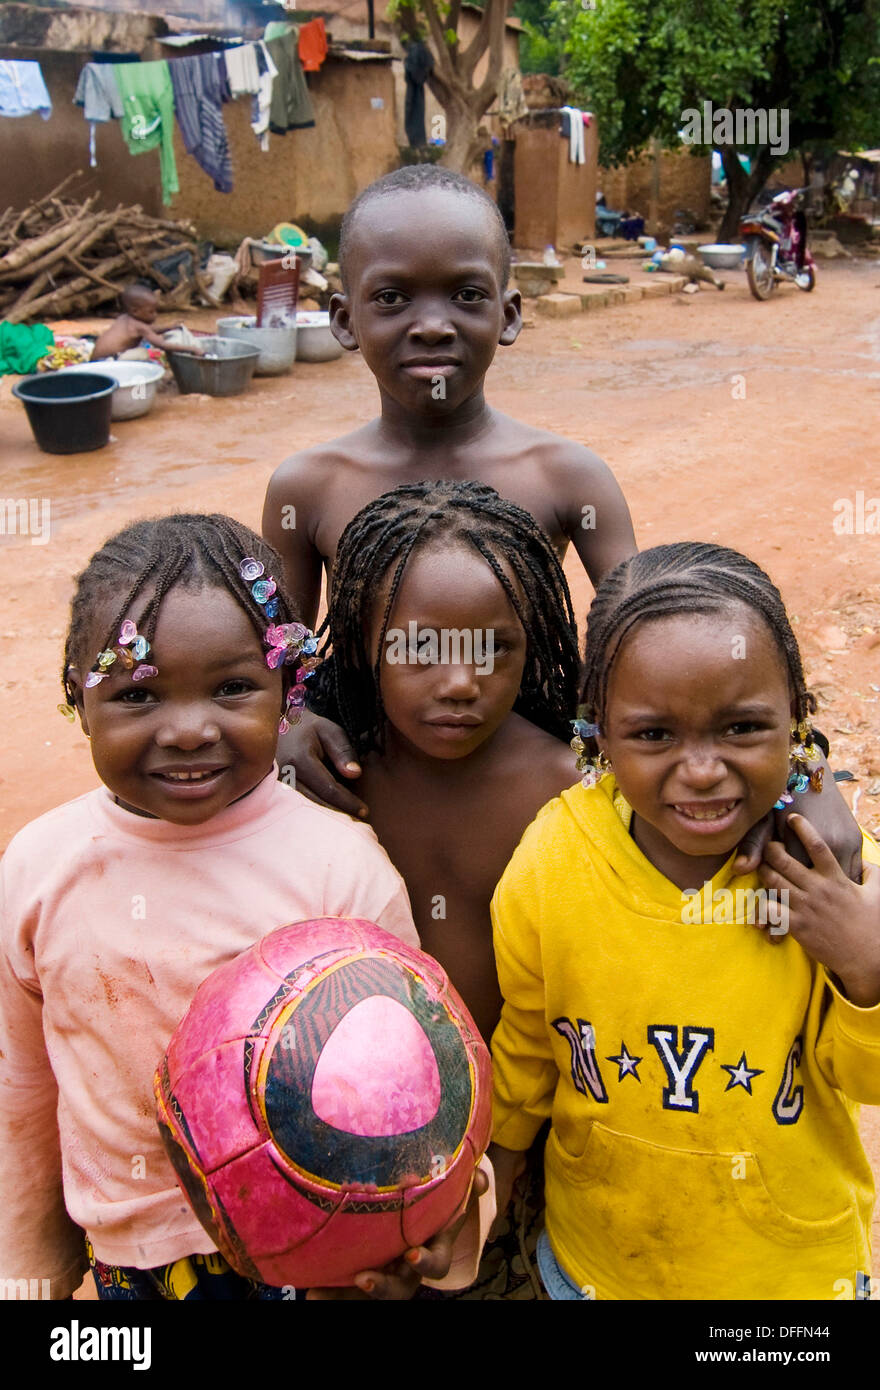 Cute Burkinabe children in Bobo Dioulasso, Burkina Faso. - Stock Image